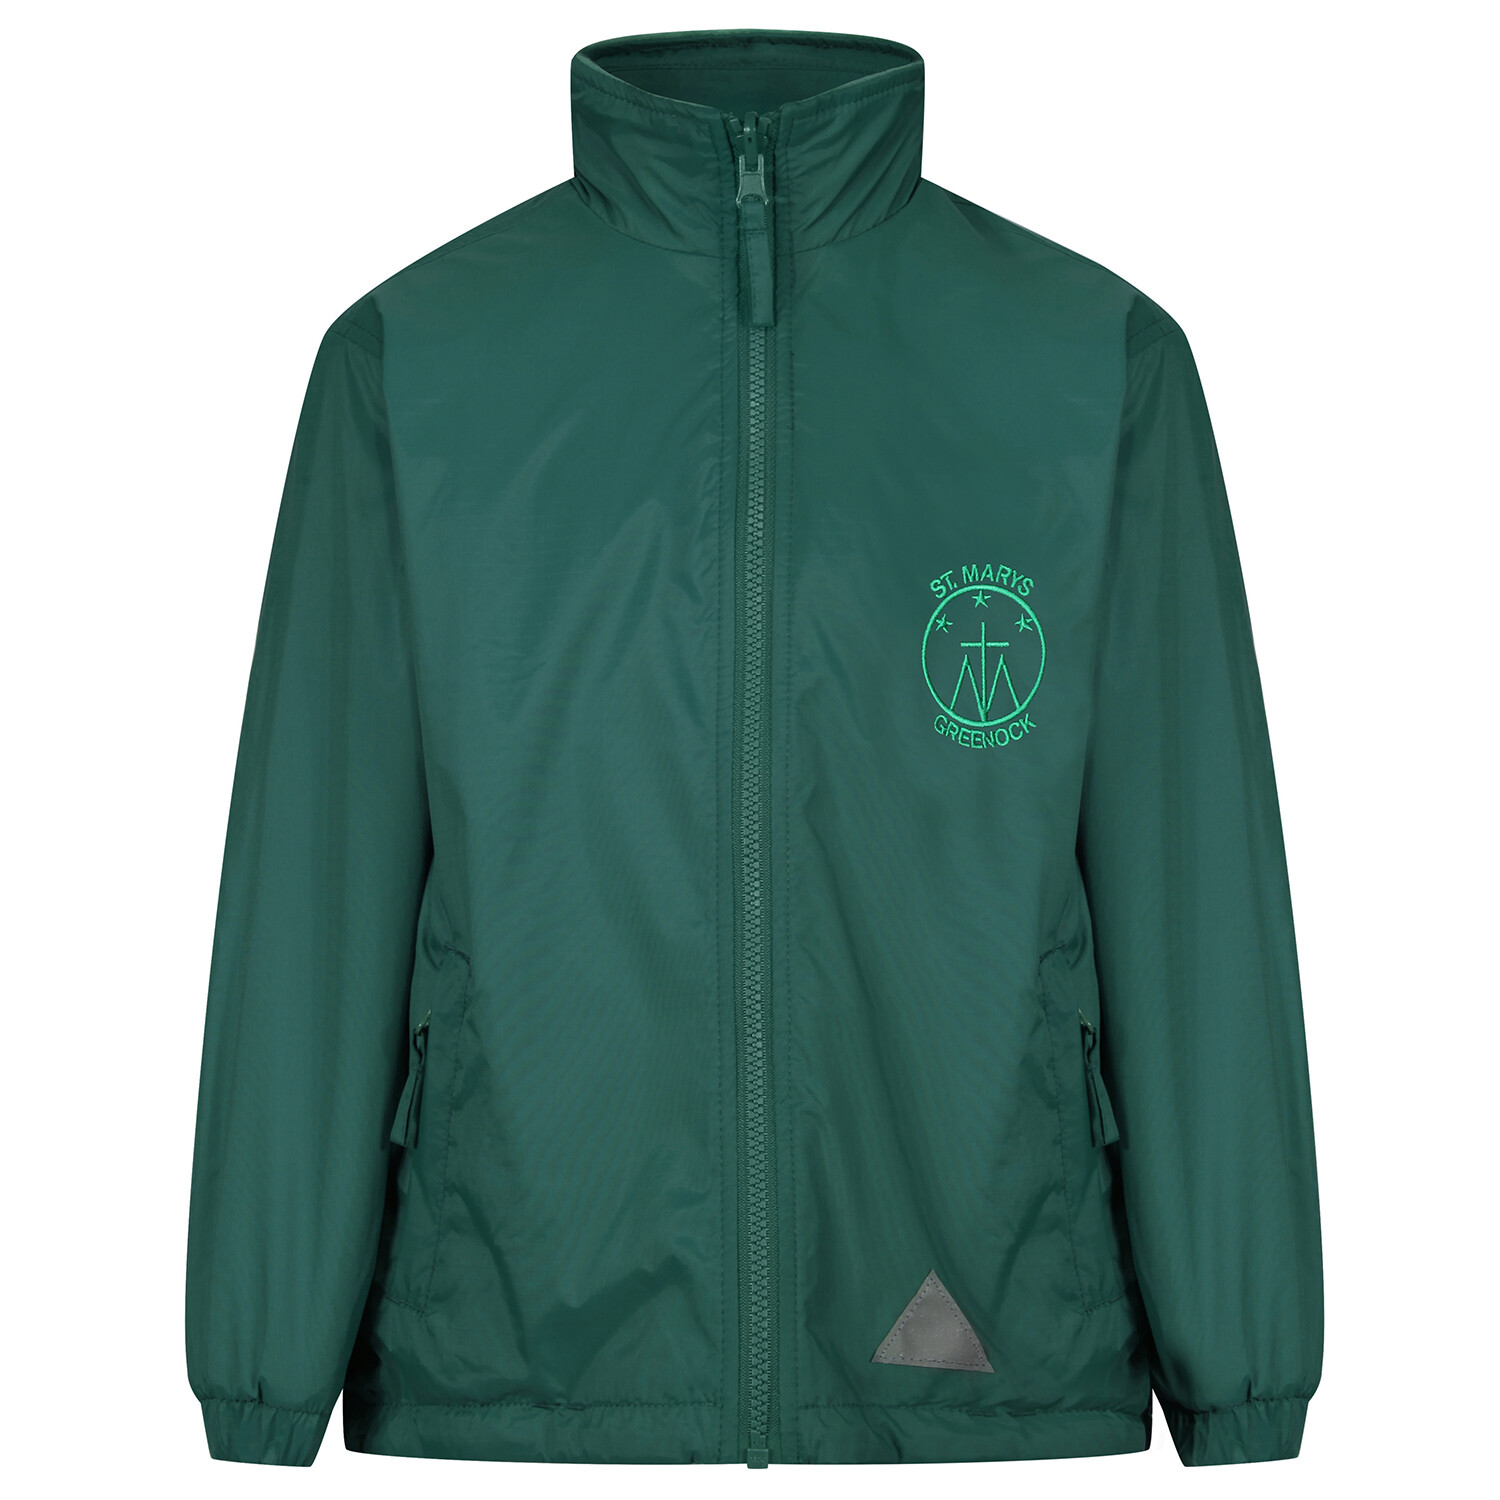 St Mary's Primary 'Lightweight' Rain Jacket (Fleece lined)